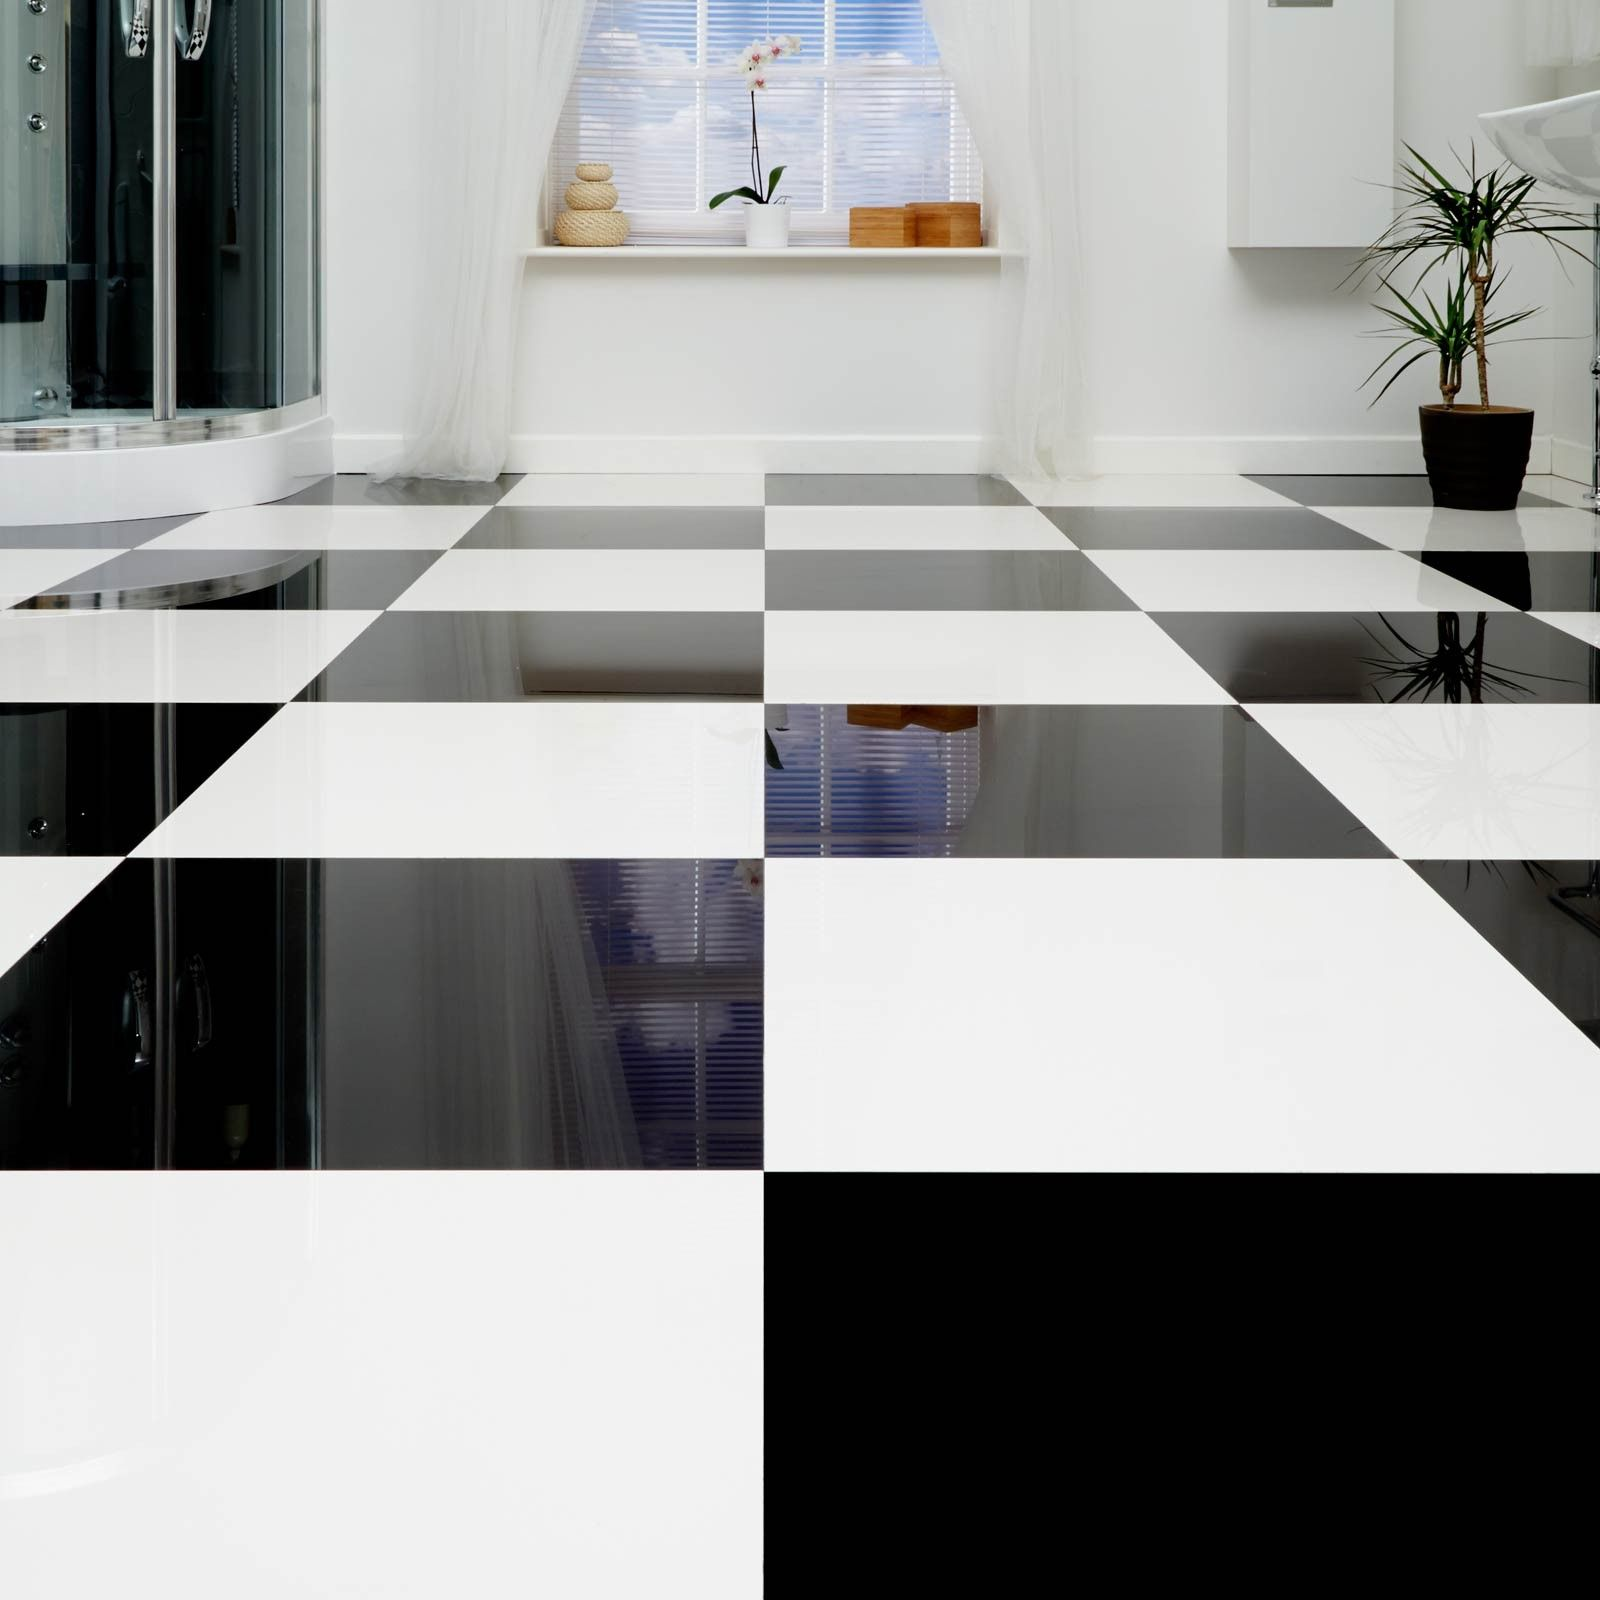 Amazing X Absolute Black Polished Porcelain(Box Of   Black And White Bathroom Ideas    Black Floor Tiles   Better Bathrooms